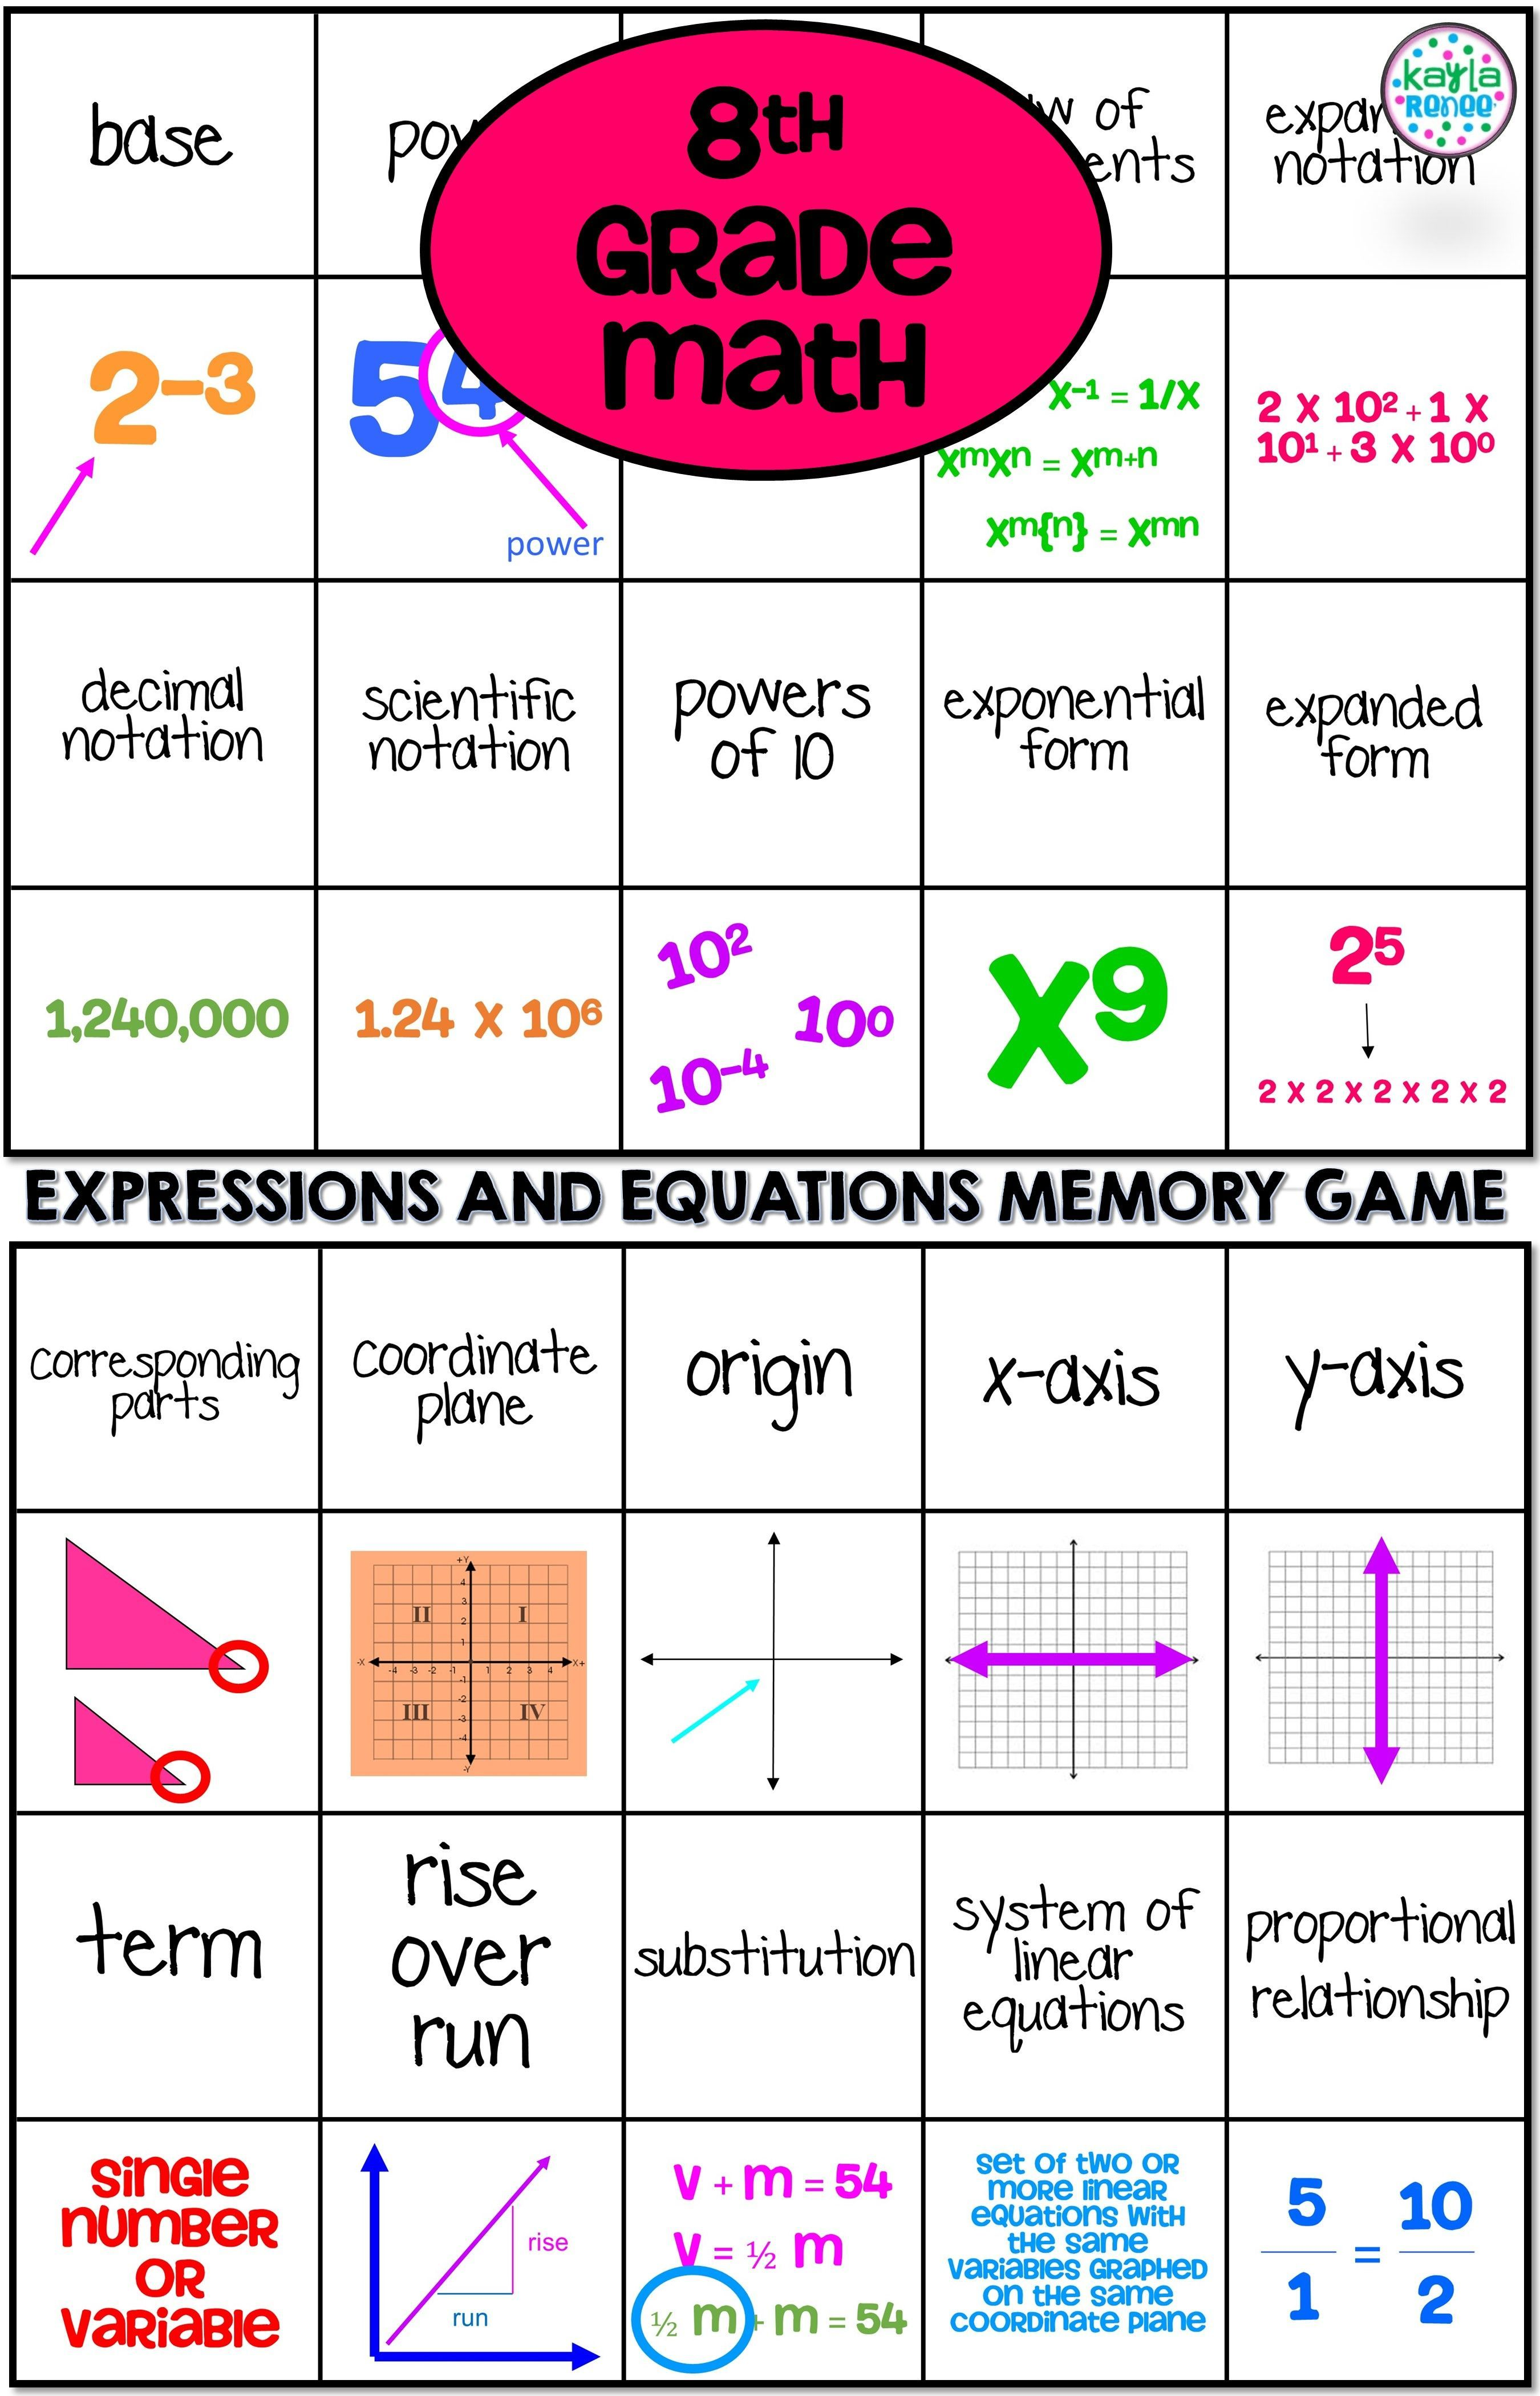 8th Grade Math Expressions And Equations Memory Match Game 8th Grade Math Math Expressions Middle School Math Resources [ 4200 x 2700 Pixel ]